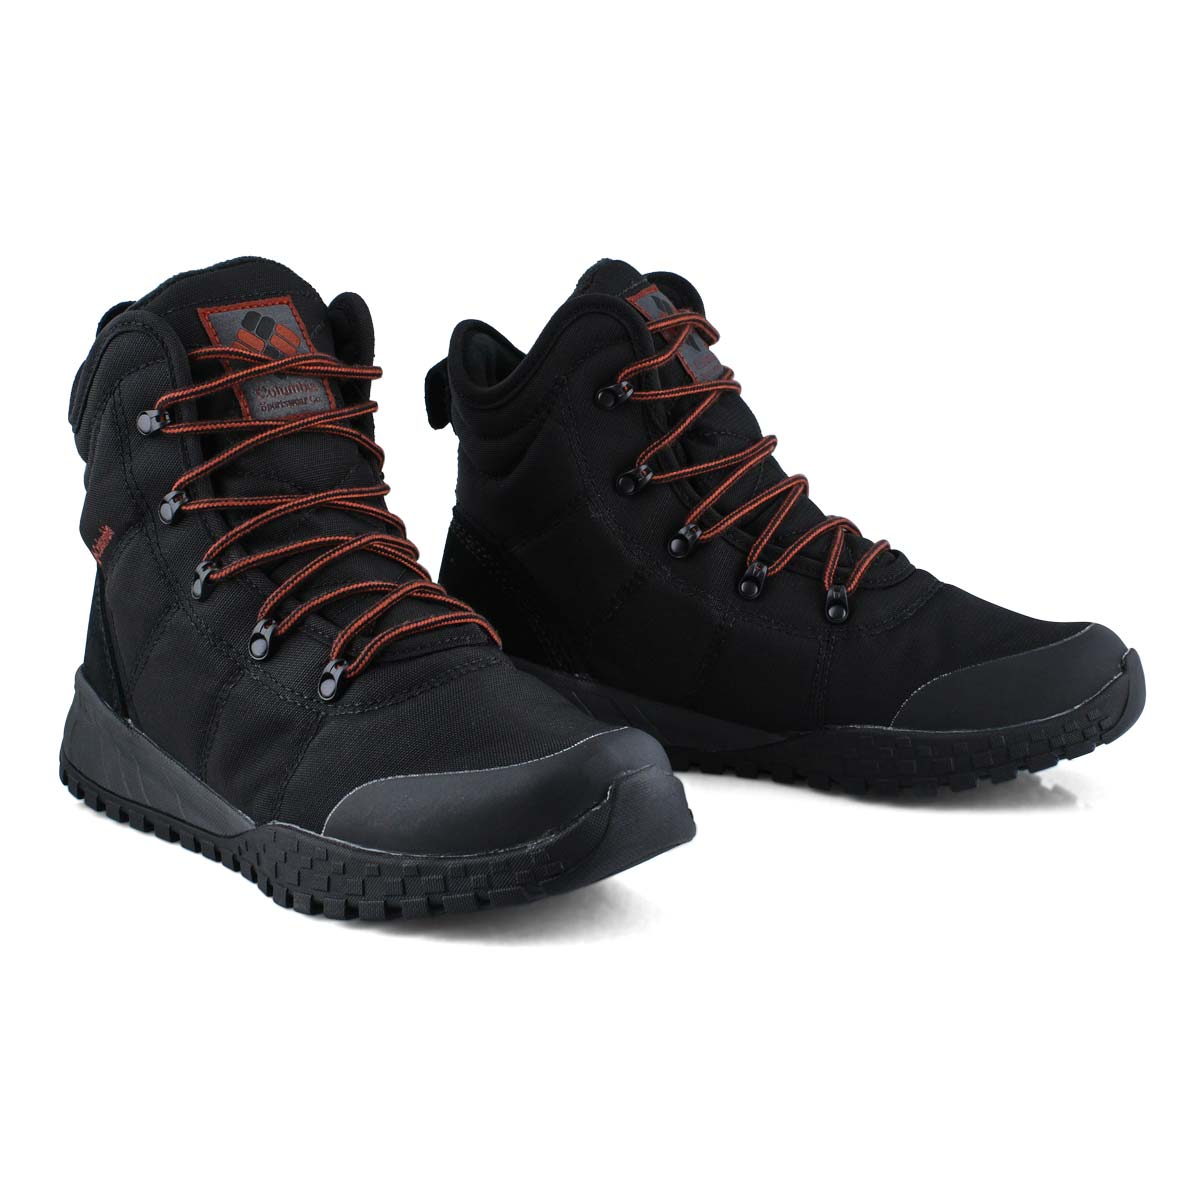 Mns Fairbanks OmniHeat black wtpf boot